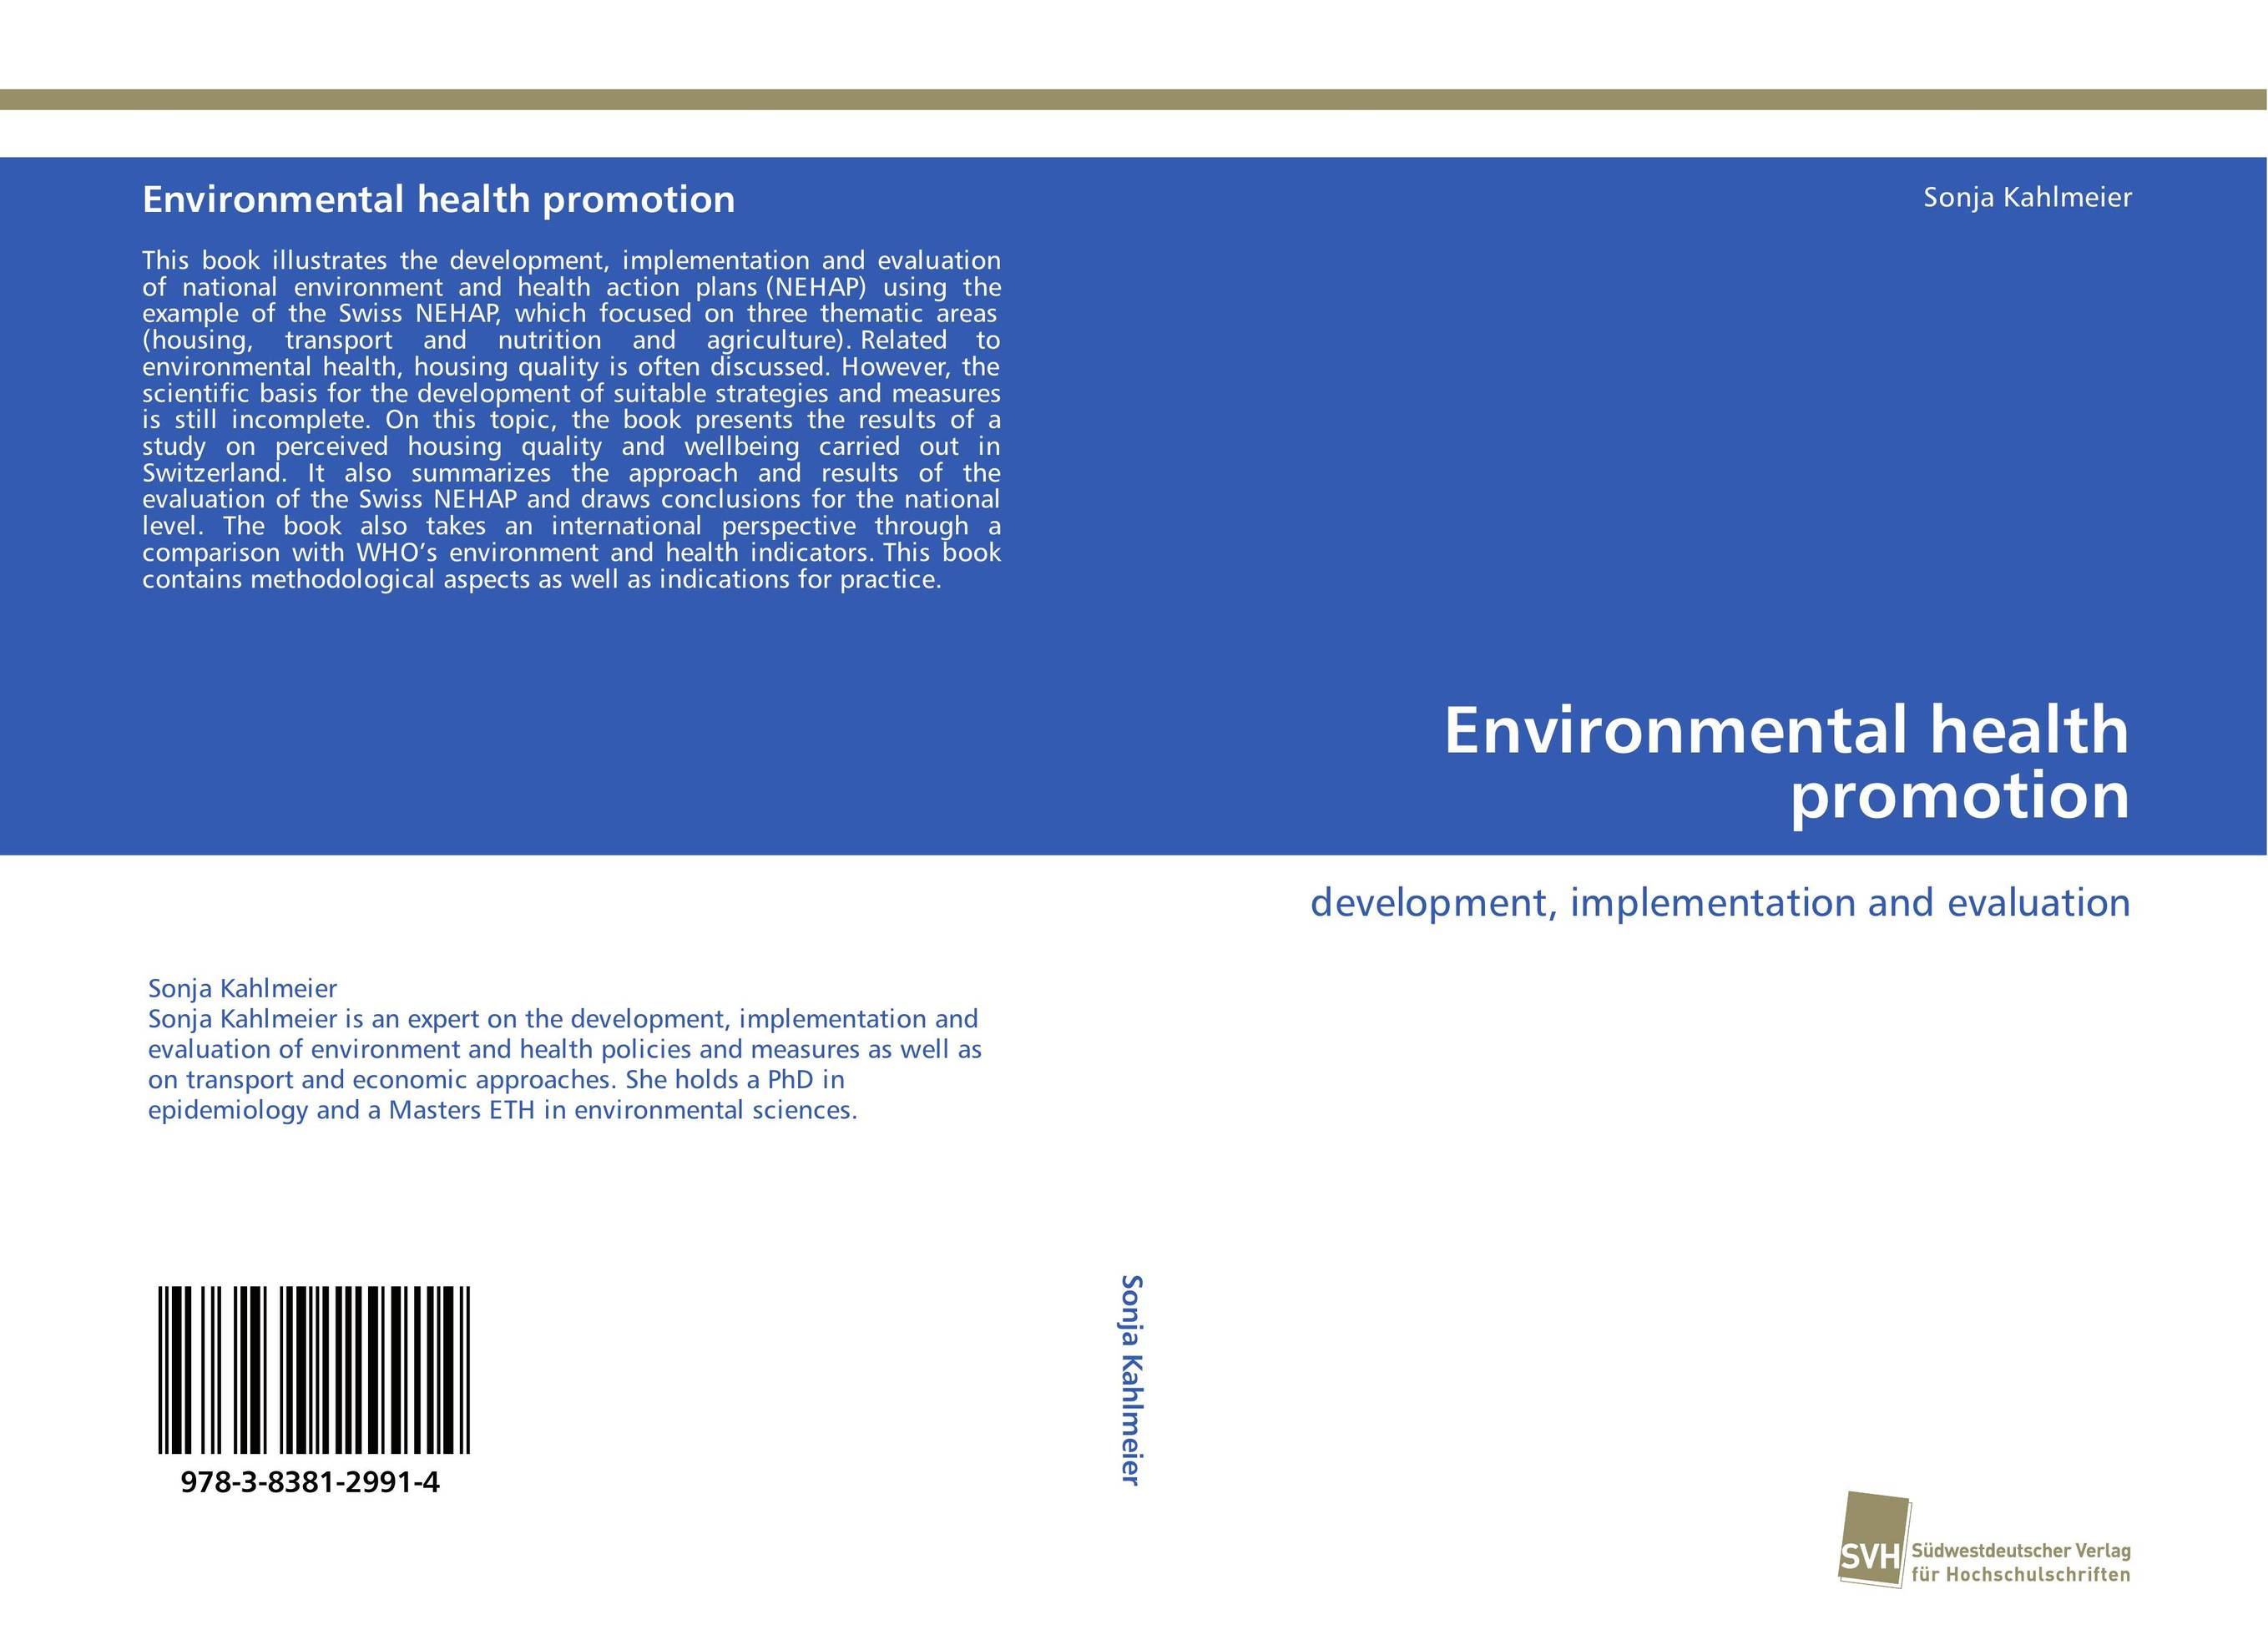 Environmental health promotion the role of evaluation as a mechanism for advancing principal practice